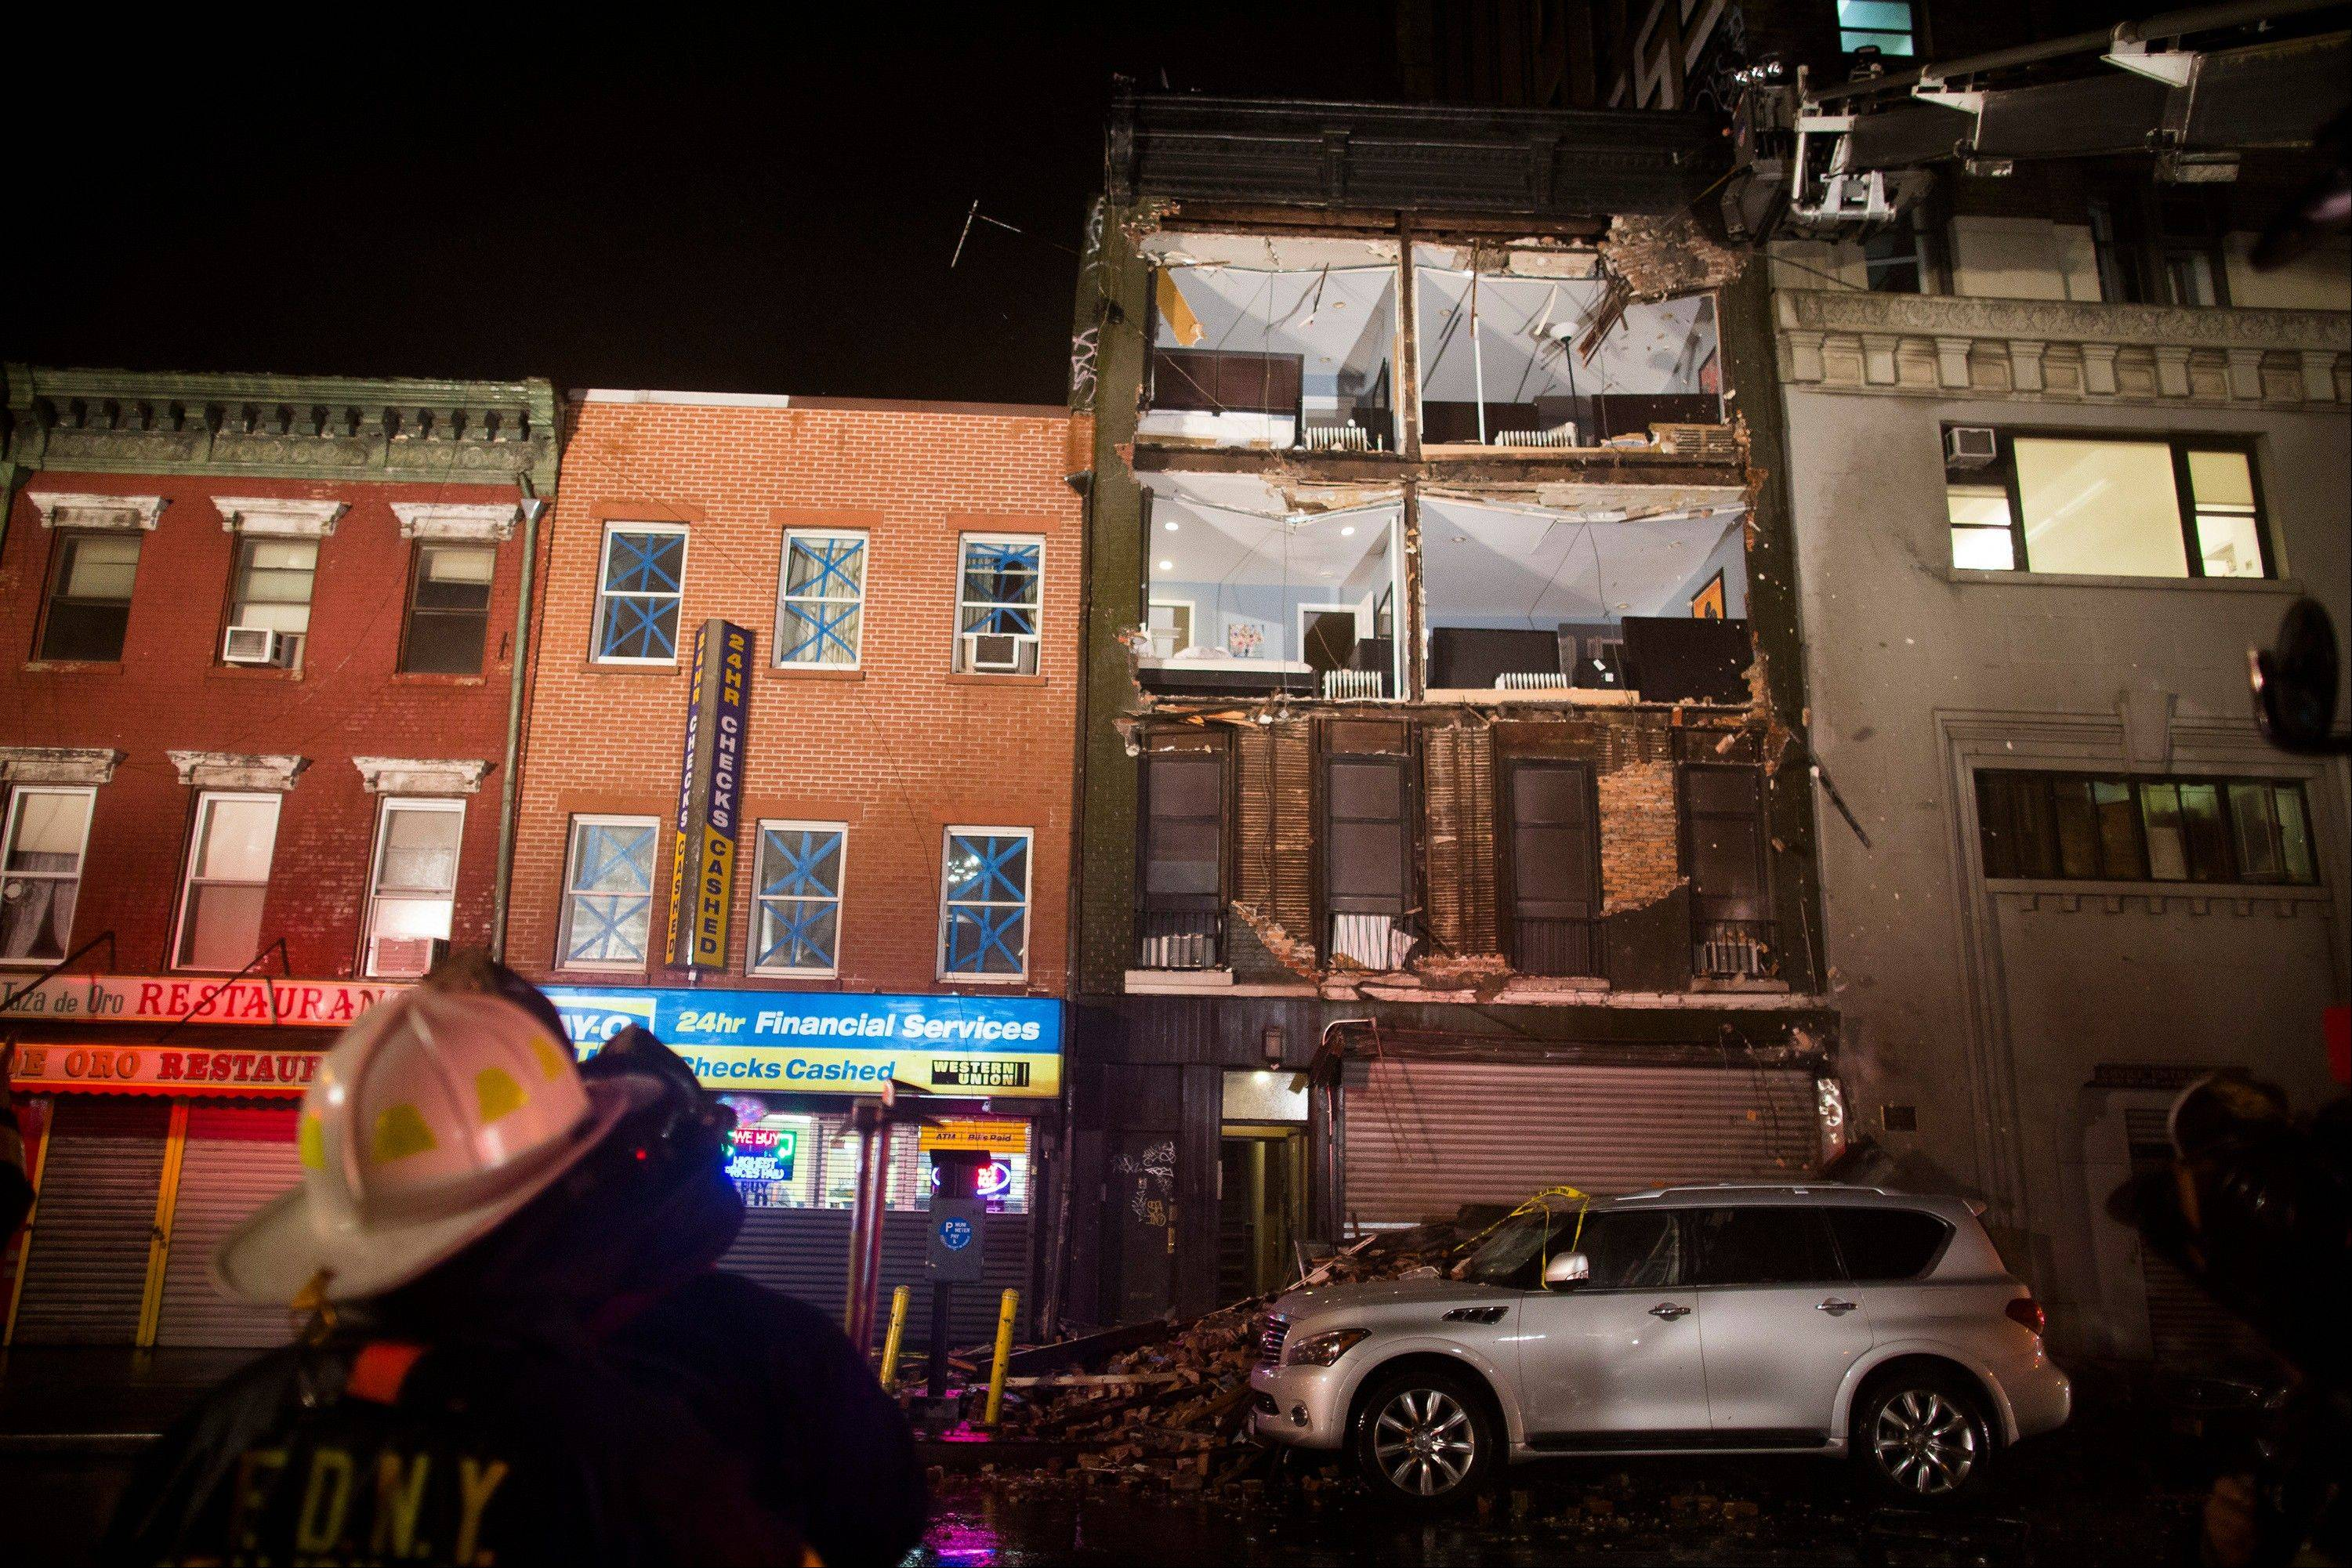 Firefighters look up at the facade of a four-story building on 14th Street and 8th Avenue that collapsed onto the sidewalk Monday, Oct. 29, 2012, in New York. Hurricane Sandy bore down on the Eastern Seaboard's largest cities Monday, forcing the shutdown of mass transit, schools and financial markets, sending coastal residents fleeing, and threatening a dangerous mix of high winds, soaking rain and a surging wall of water up to 11 feet tall.